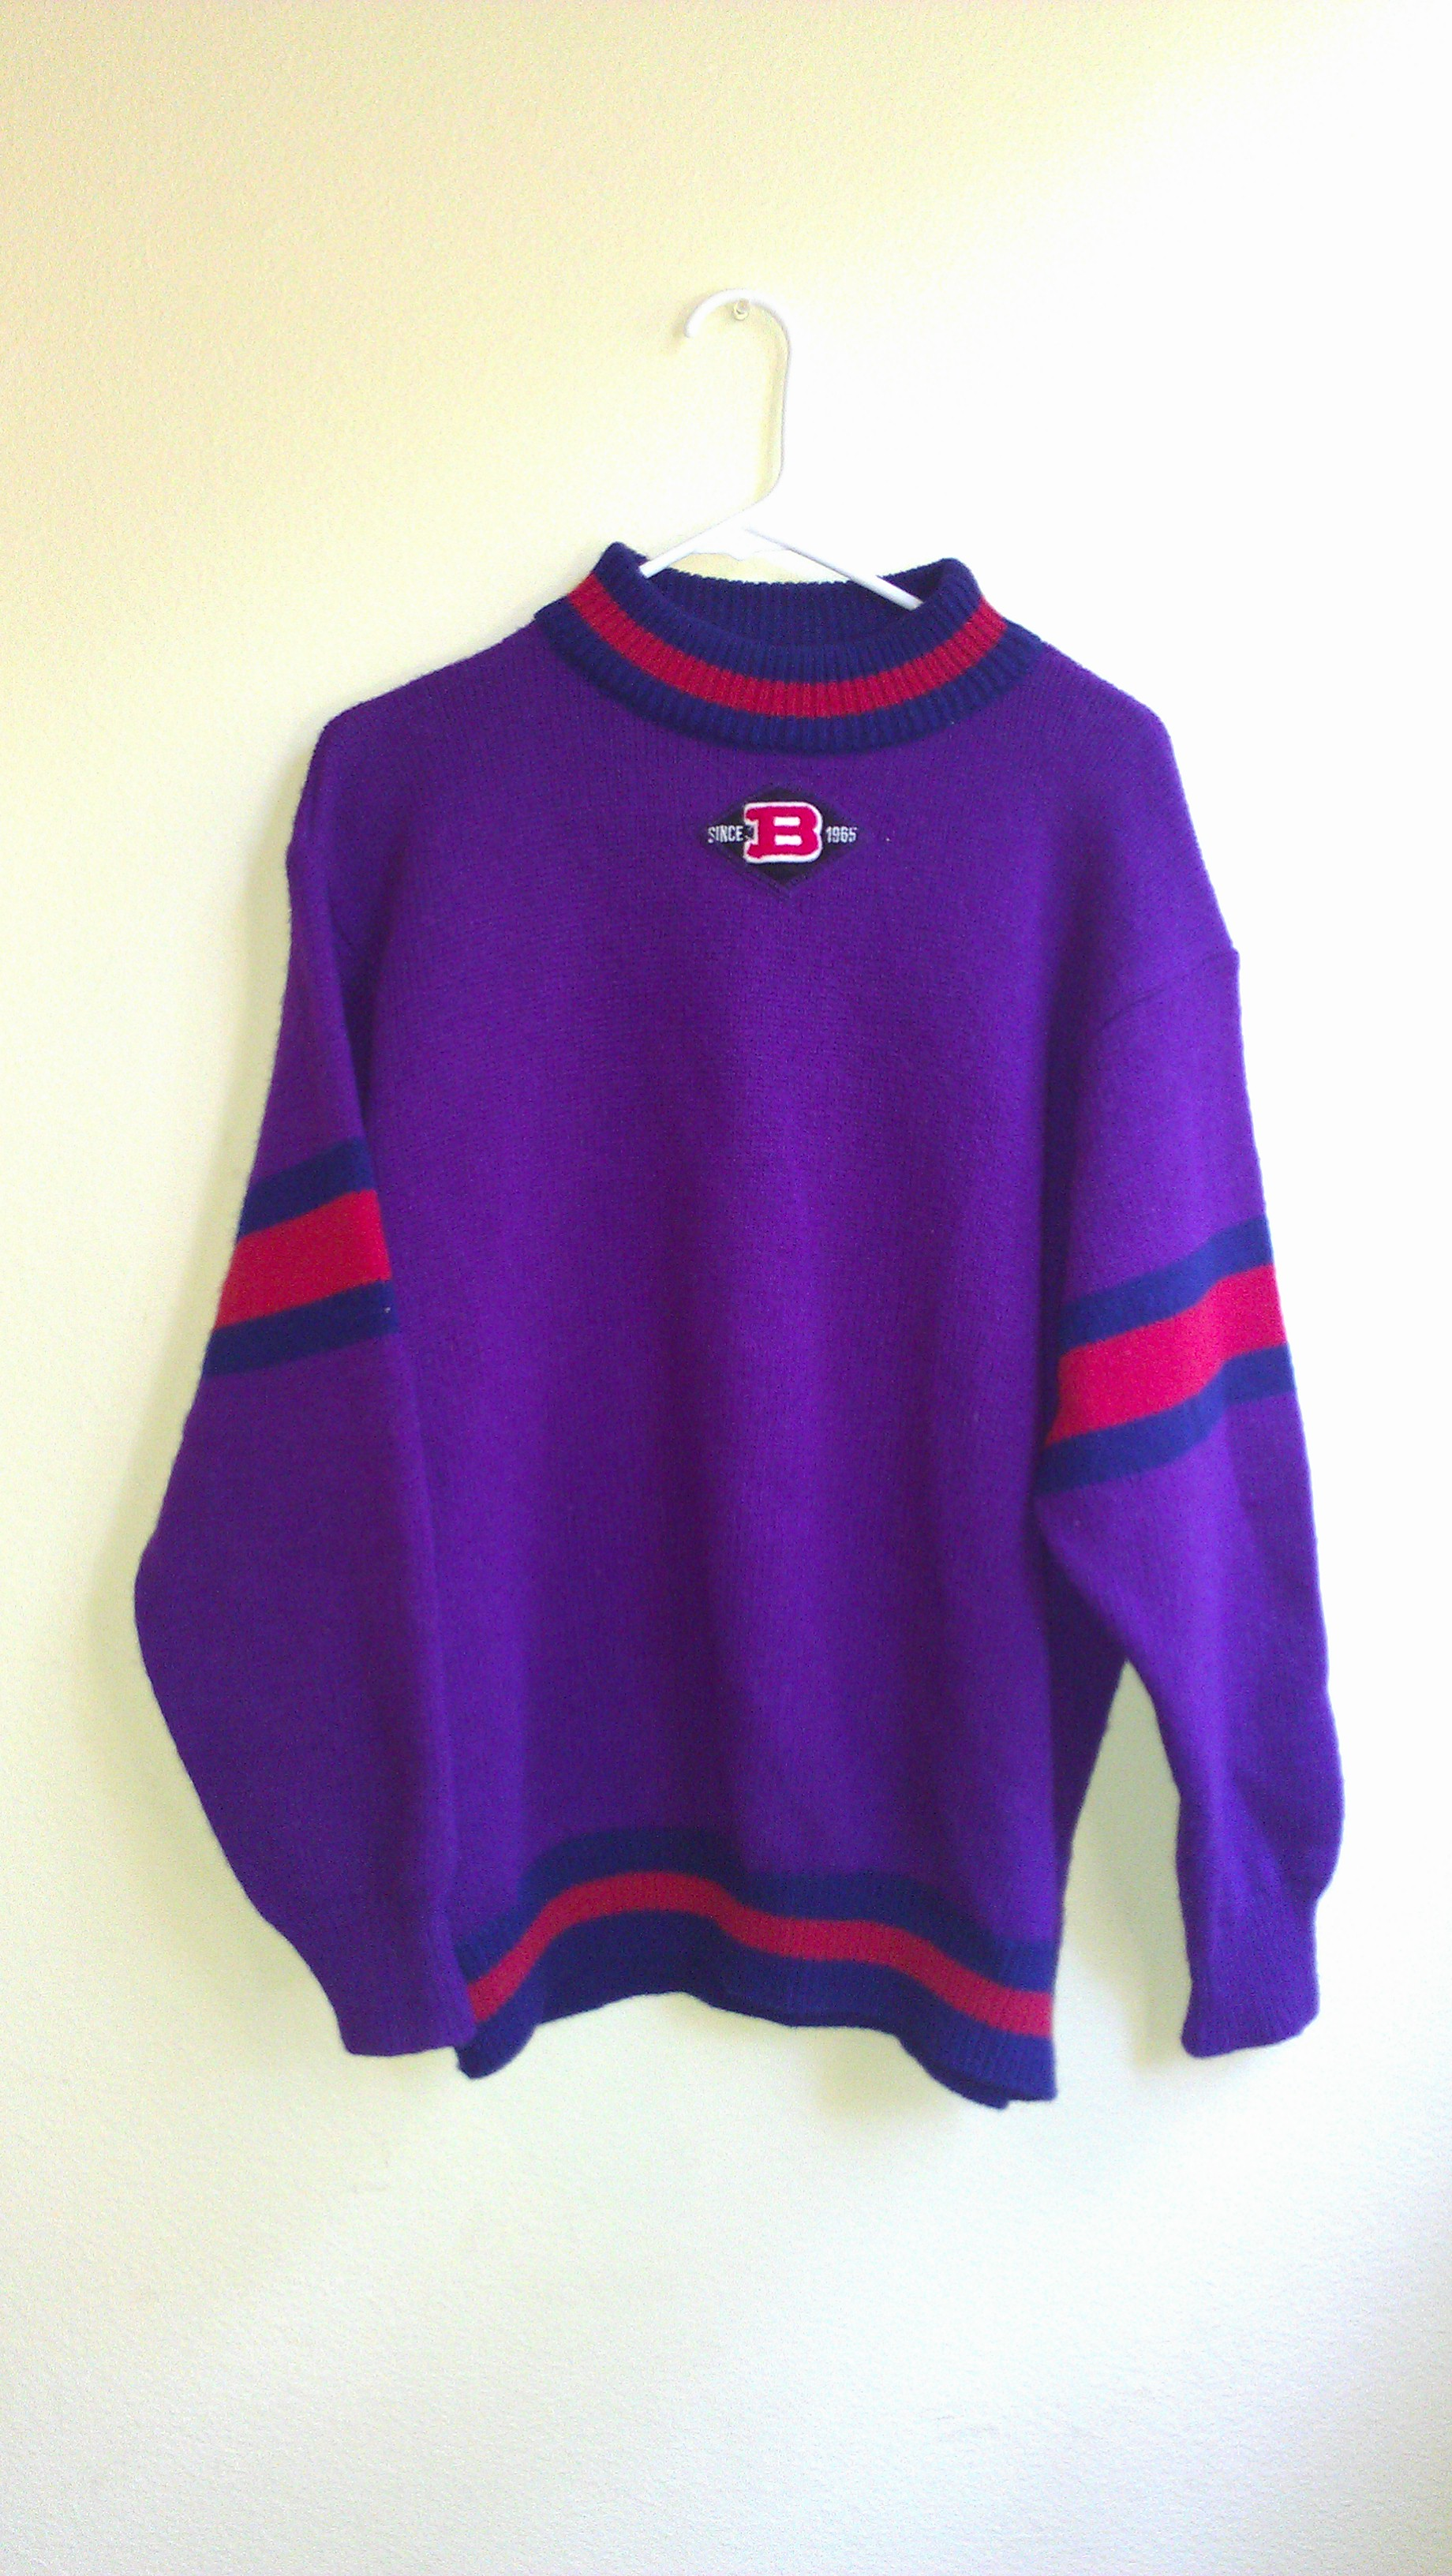 f95d8448b03a VINTAGE 80S UNITED COLORS OF BENETTON ITALY MENS CREWNECK SWEATER ...